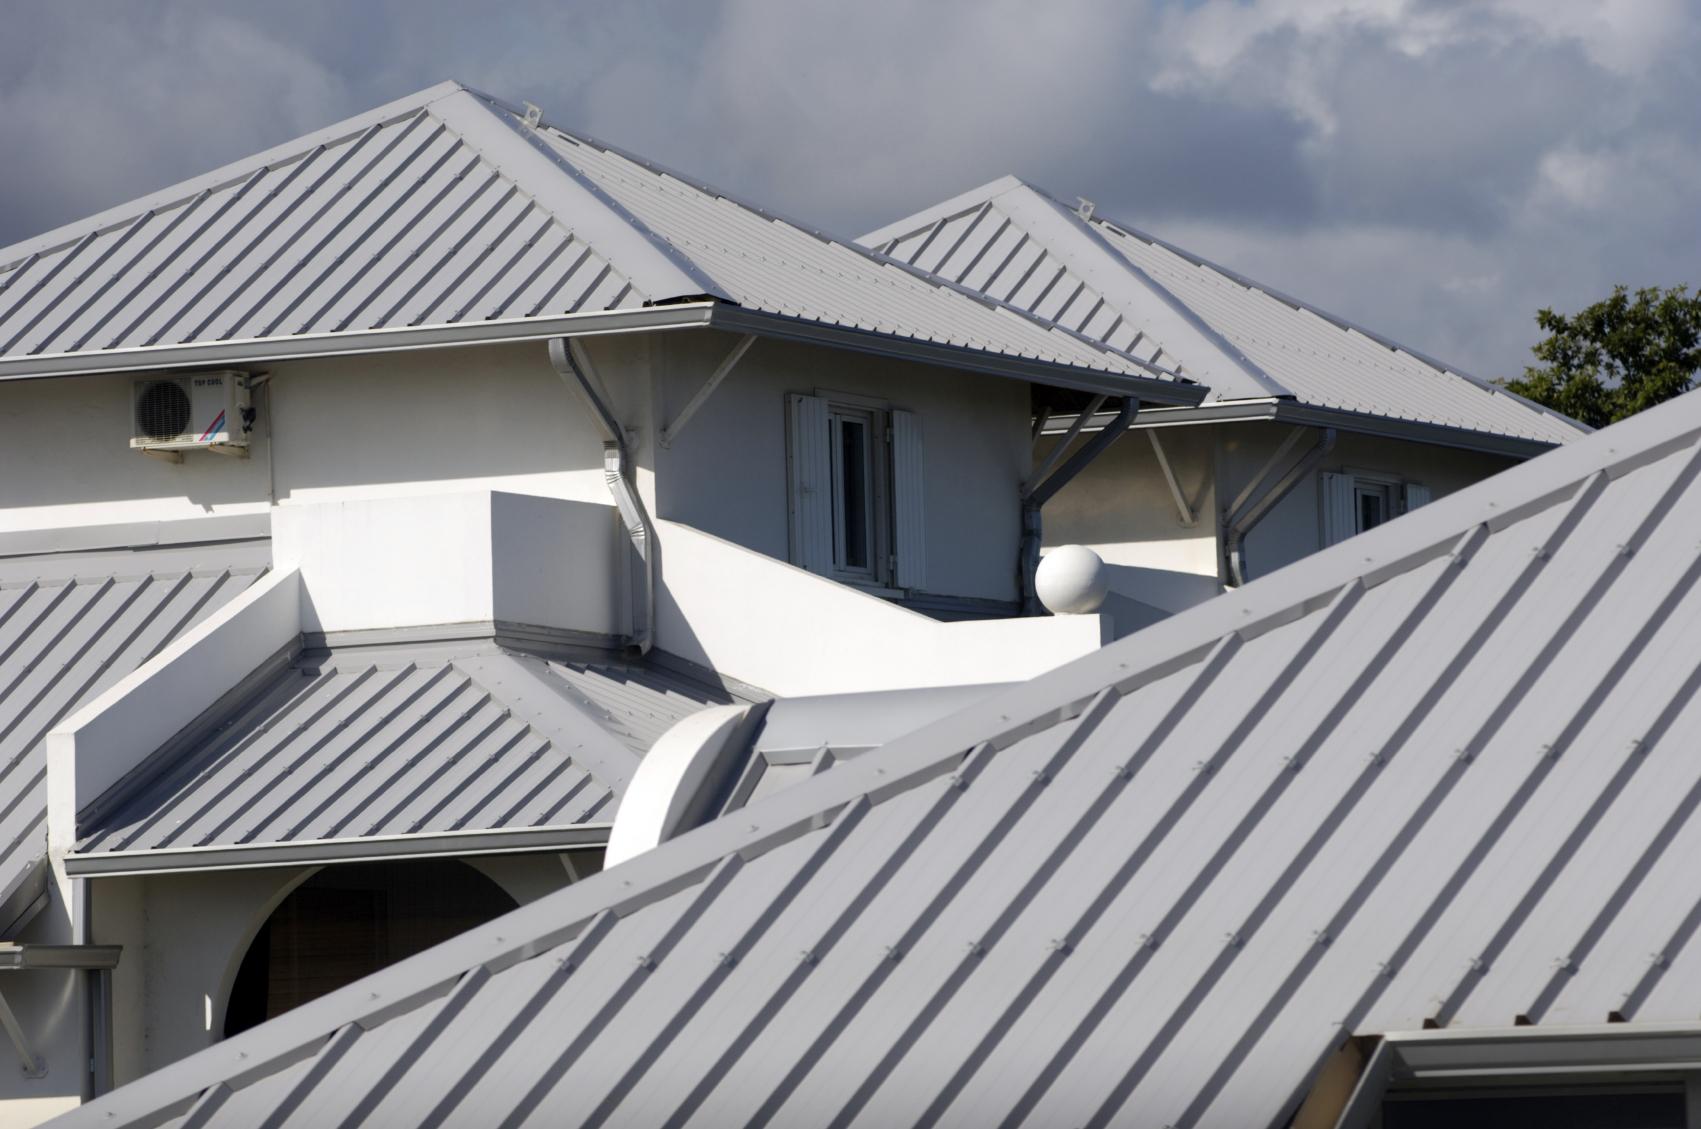 Metal Roofing in Knoxville TN | Apple Tree Roofing | Knoxville TN Roofing Contractors